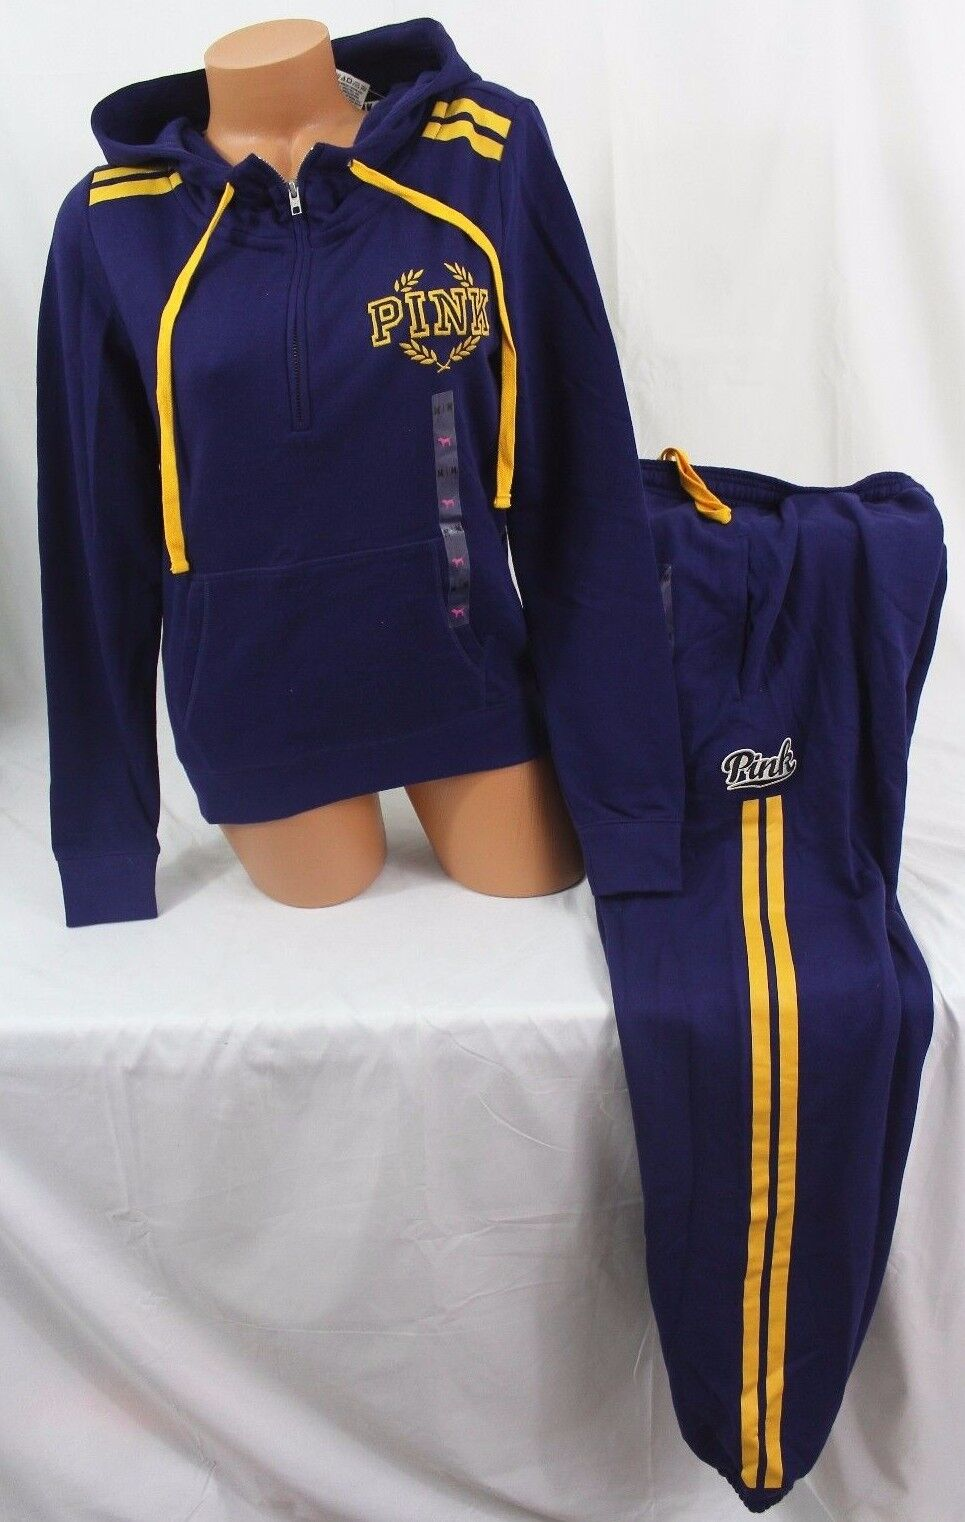 Victoria's Secret PINK sz M setPerfect ¼-Zip Hoodie & Campus Pant bluee gold